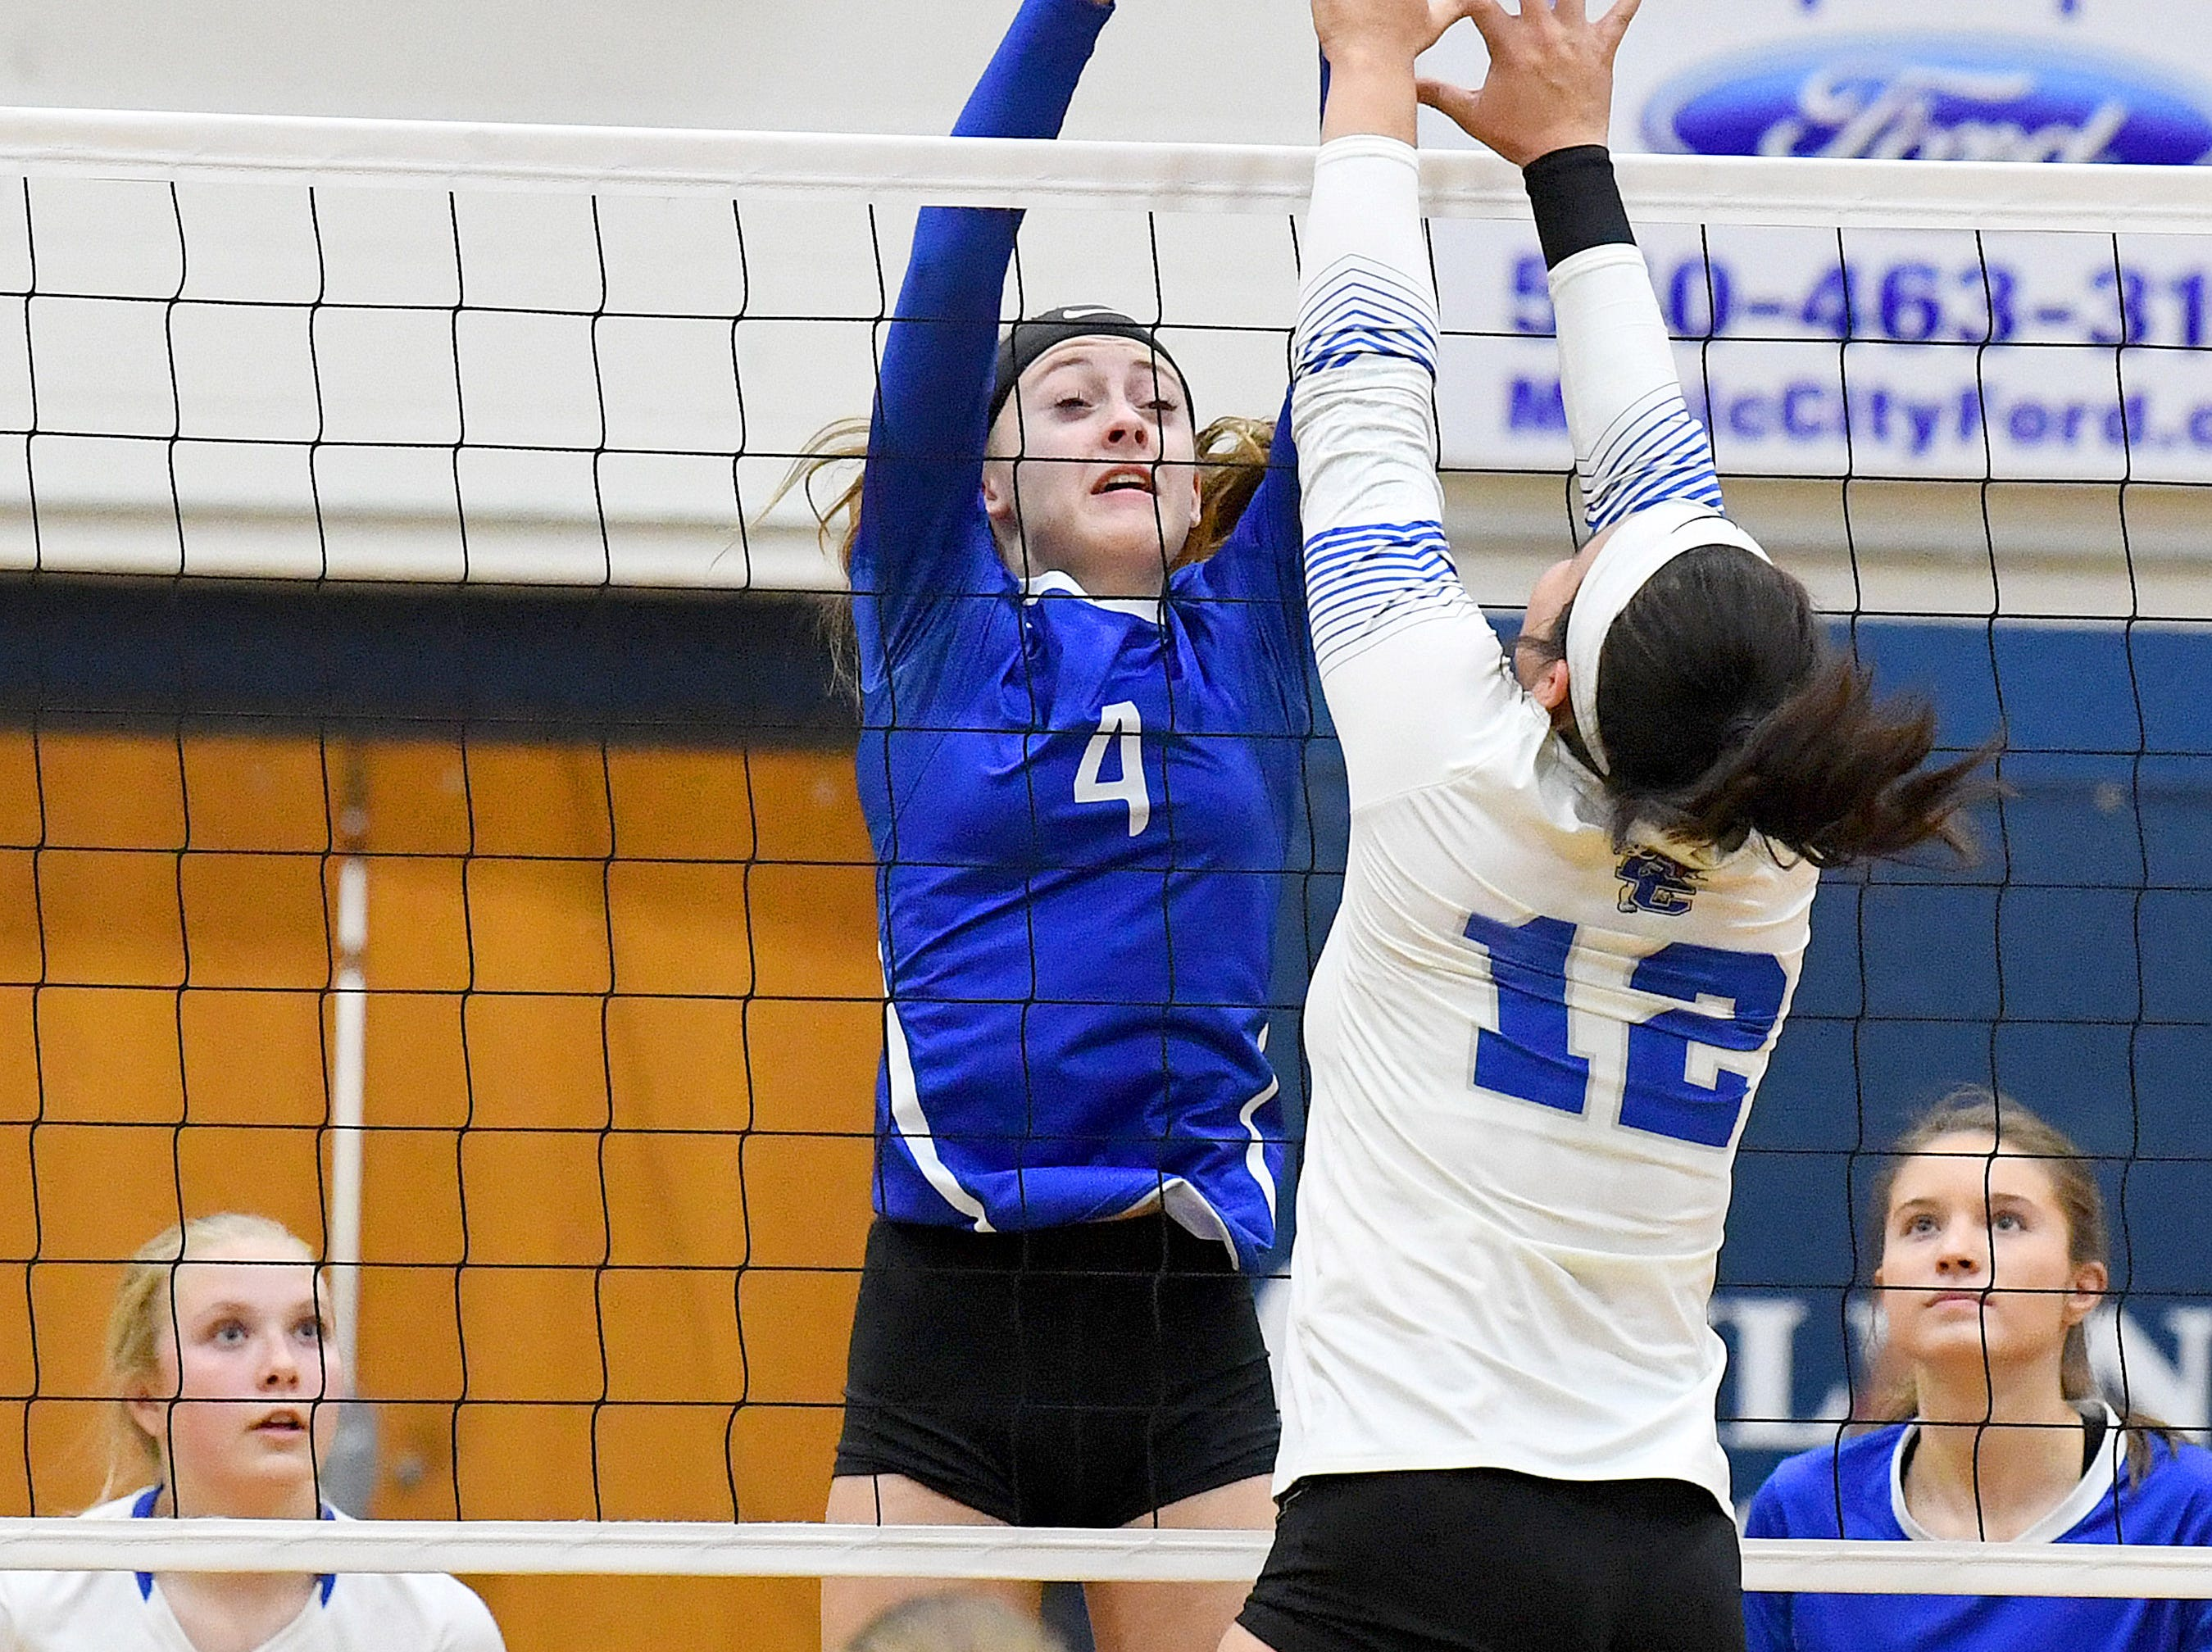 Fort Defiance's Leilani Goggin sends the ball back cross the net as Rockbridge County's Jaden Harrison tries to block at the net during a Region 3C semifinal match played in Lexington on Monday, Nov. 5, 2018.